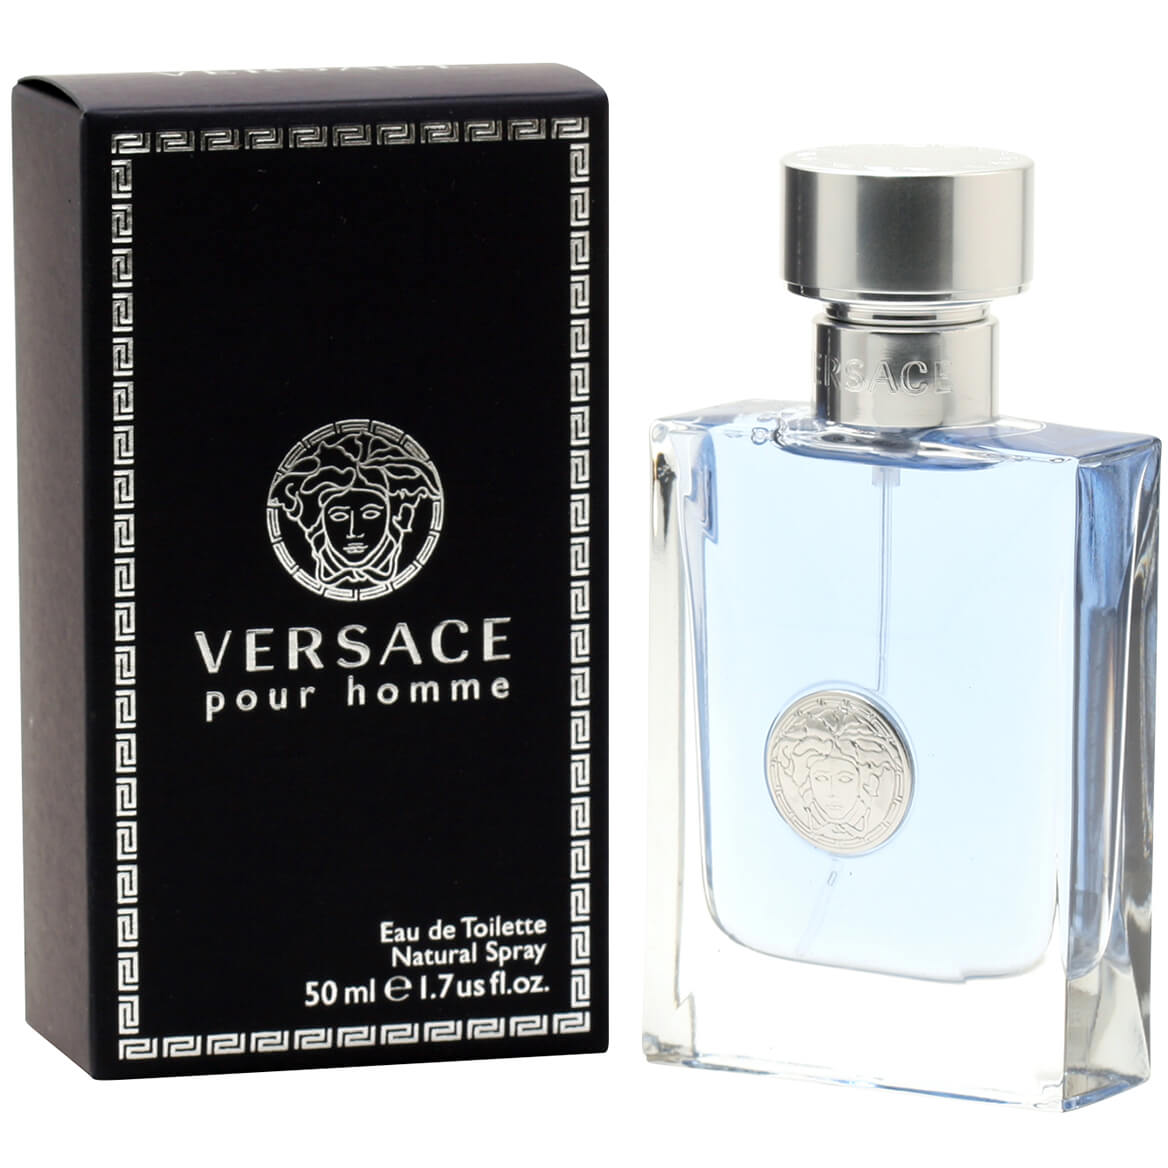 Versace Pour Homme for Men EDT - 1.7oz